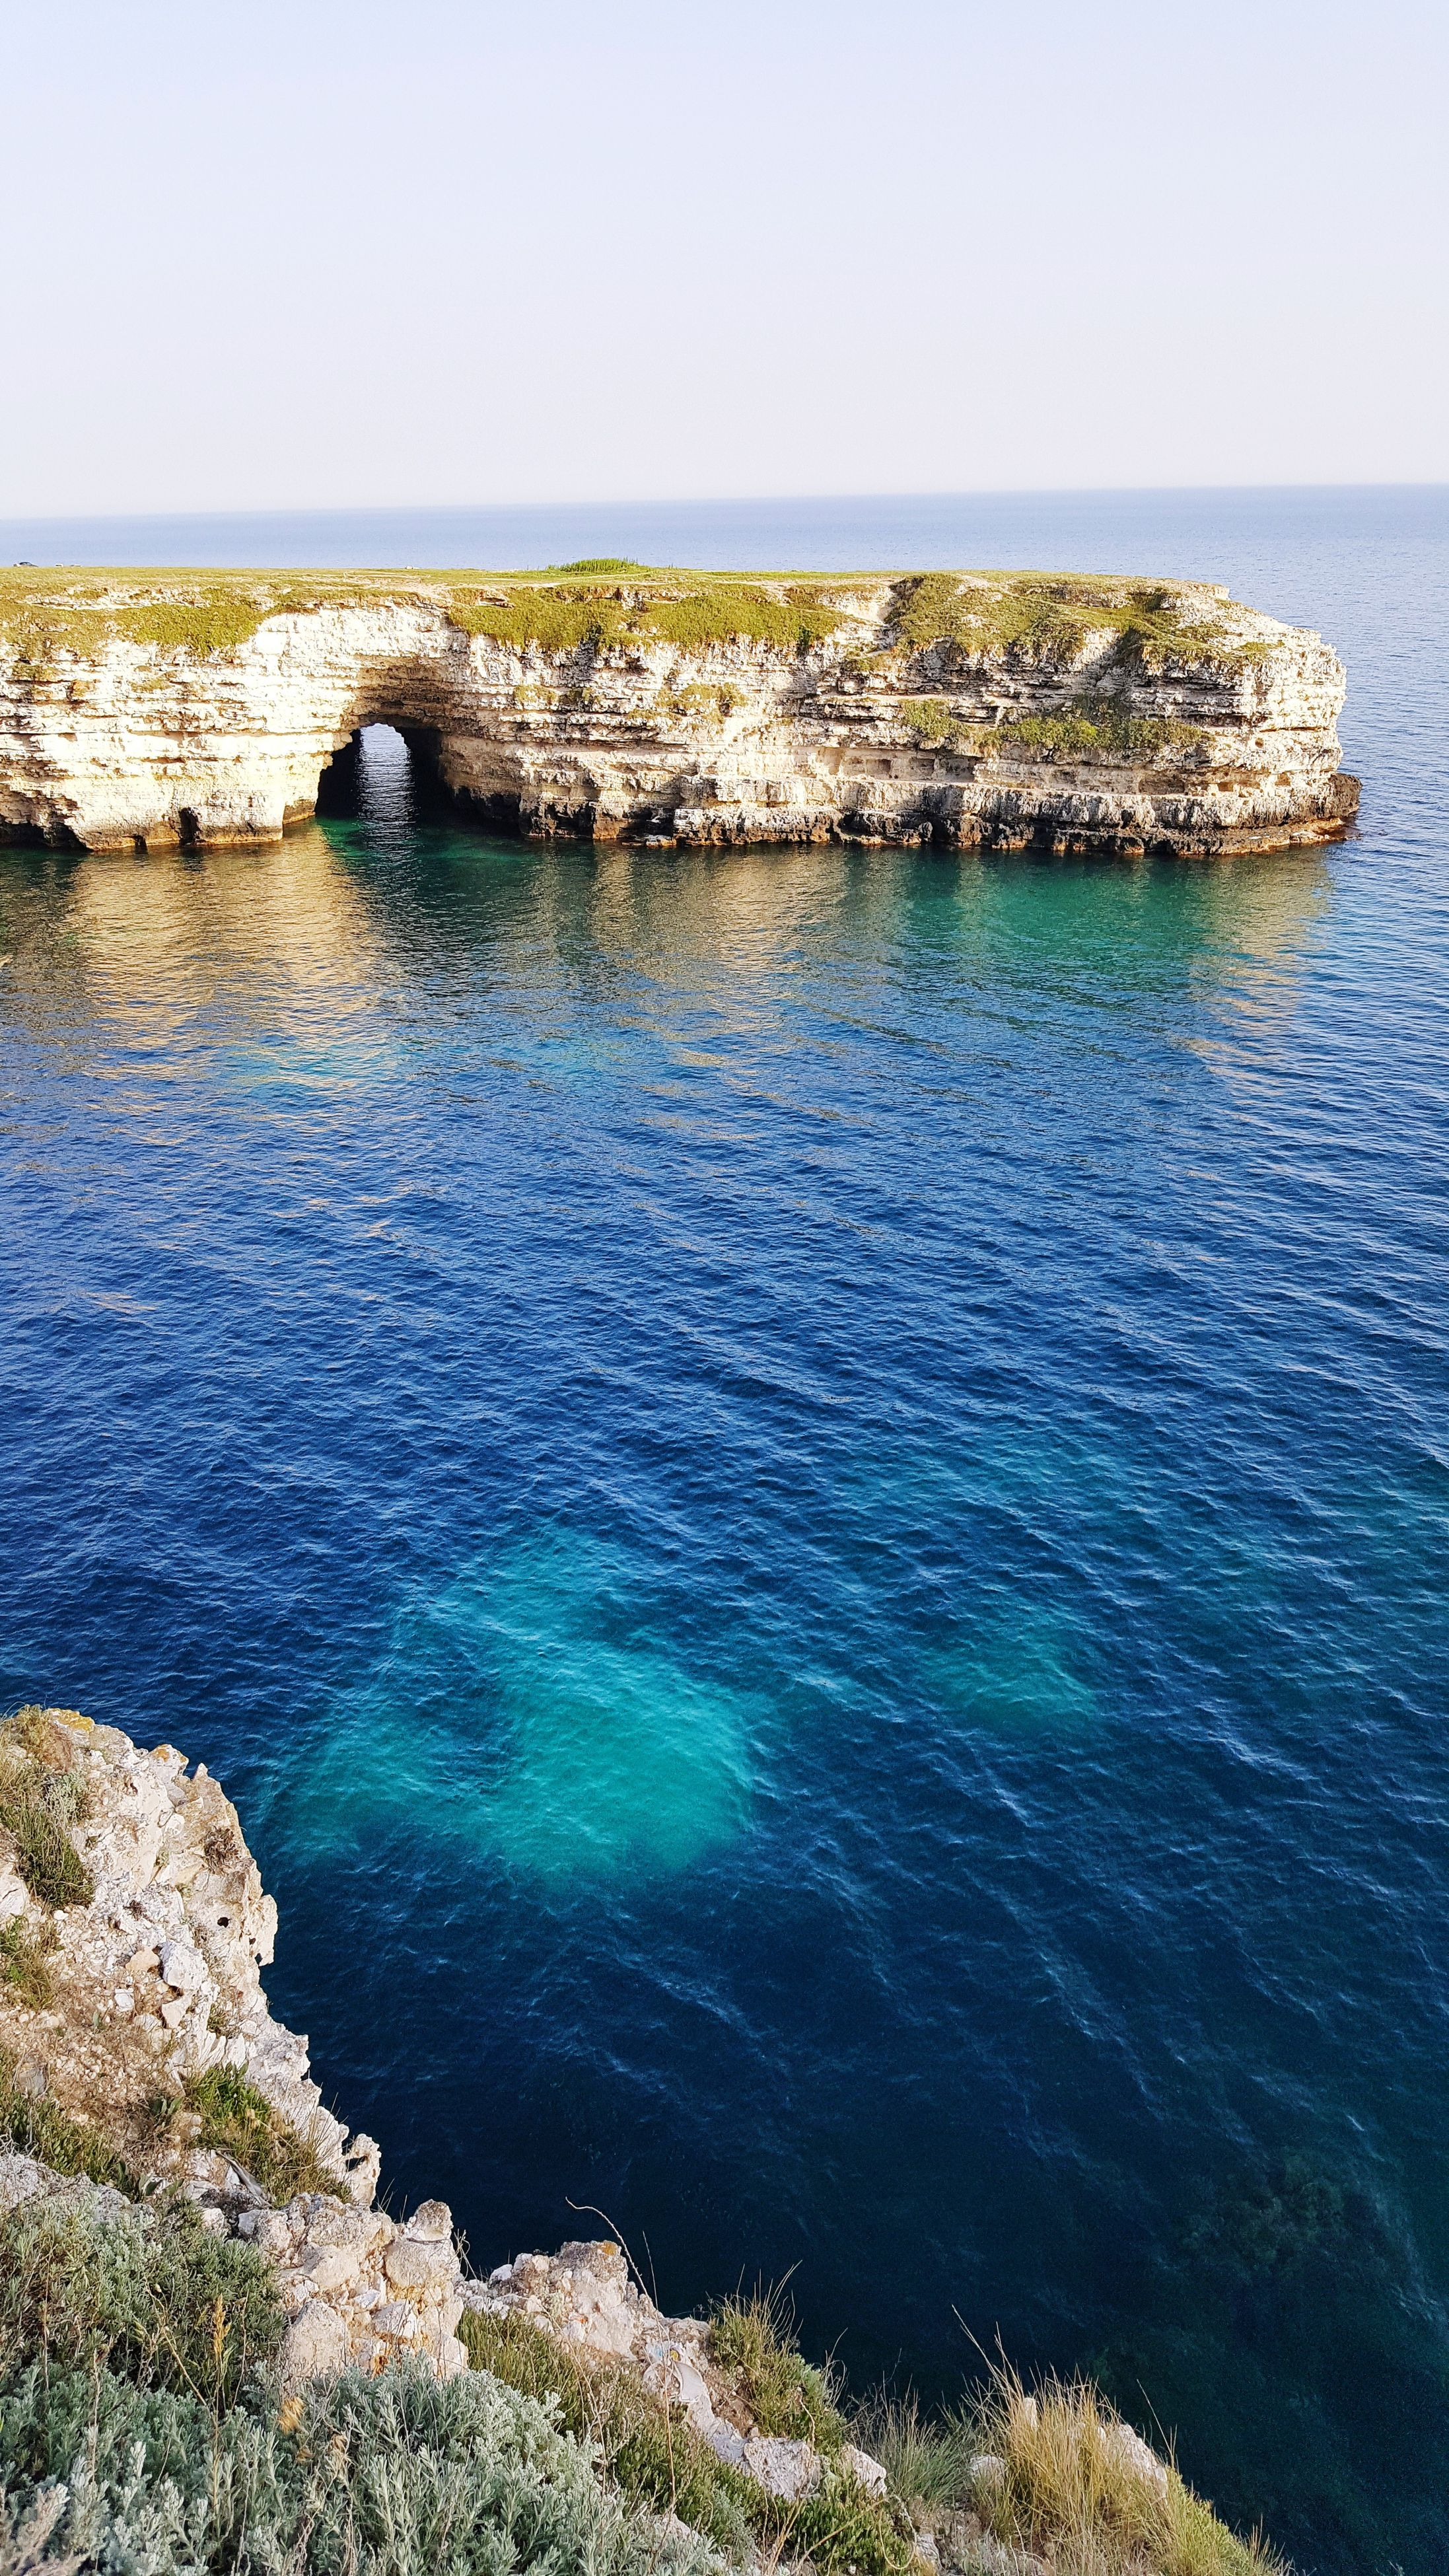 sea, rock - object, nature, water, beauty in nature, rock formation, scenics, tranquility, tranquil scene, idyllic, outdoors, day, no people, blue, clear sky, horizon over water, cliff, sky